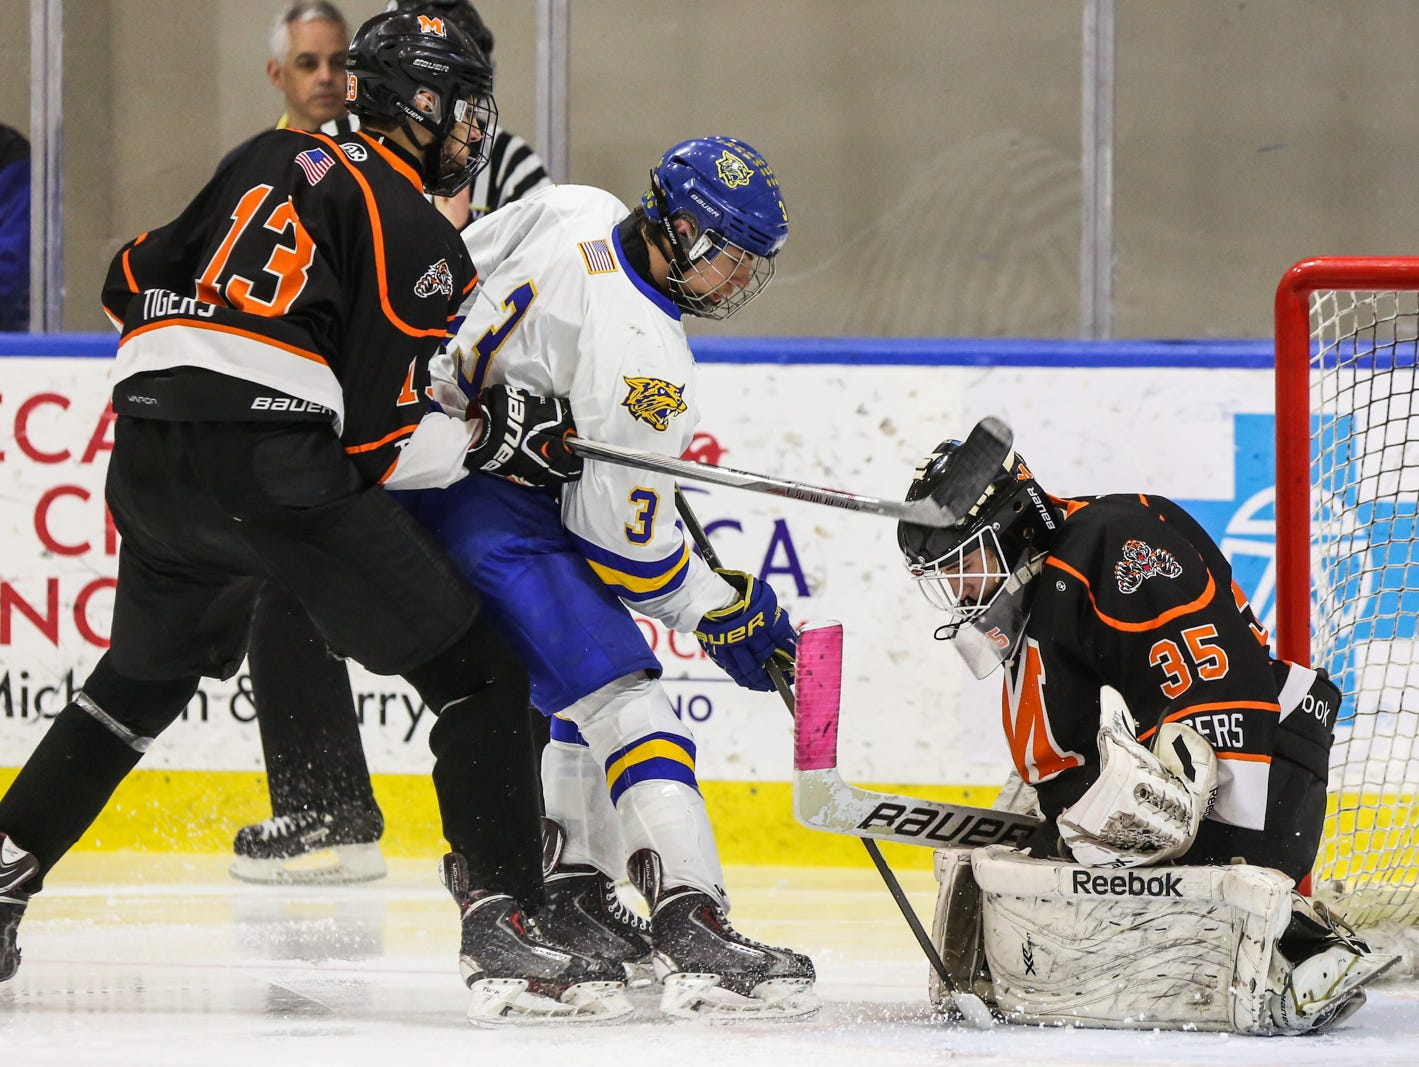 Mamaroneck goalie Tommy Spero makes a save agaisnt West Genesee's Jay Considine as Kesin Ryan Dehejia checks him in the second period of Sunday's Division 1 state championship game in Buffalo. Mamaroneck defeated West Genesee 1-0.